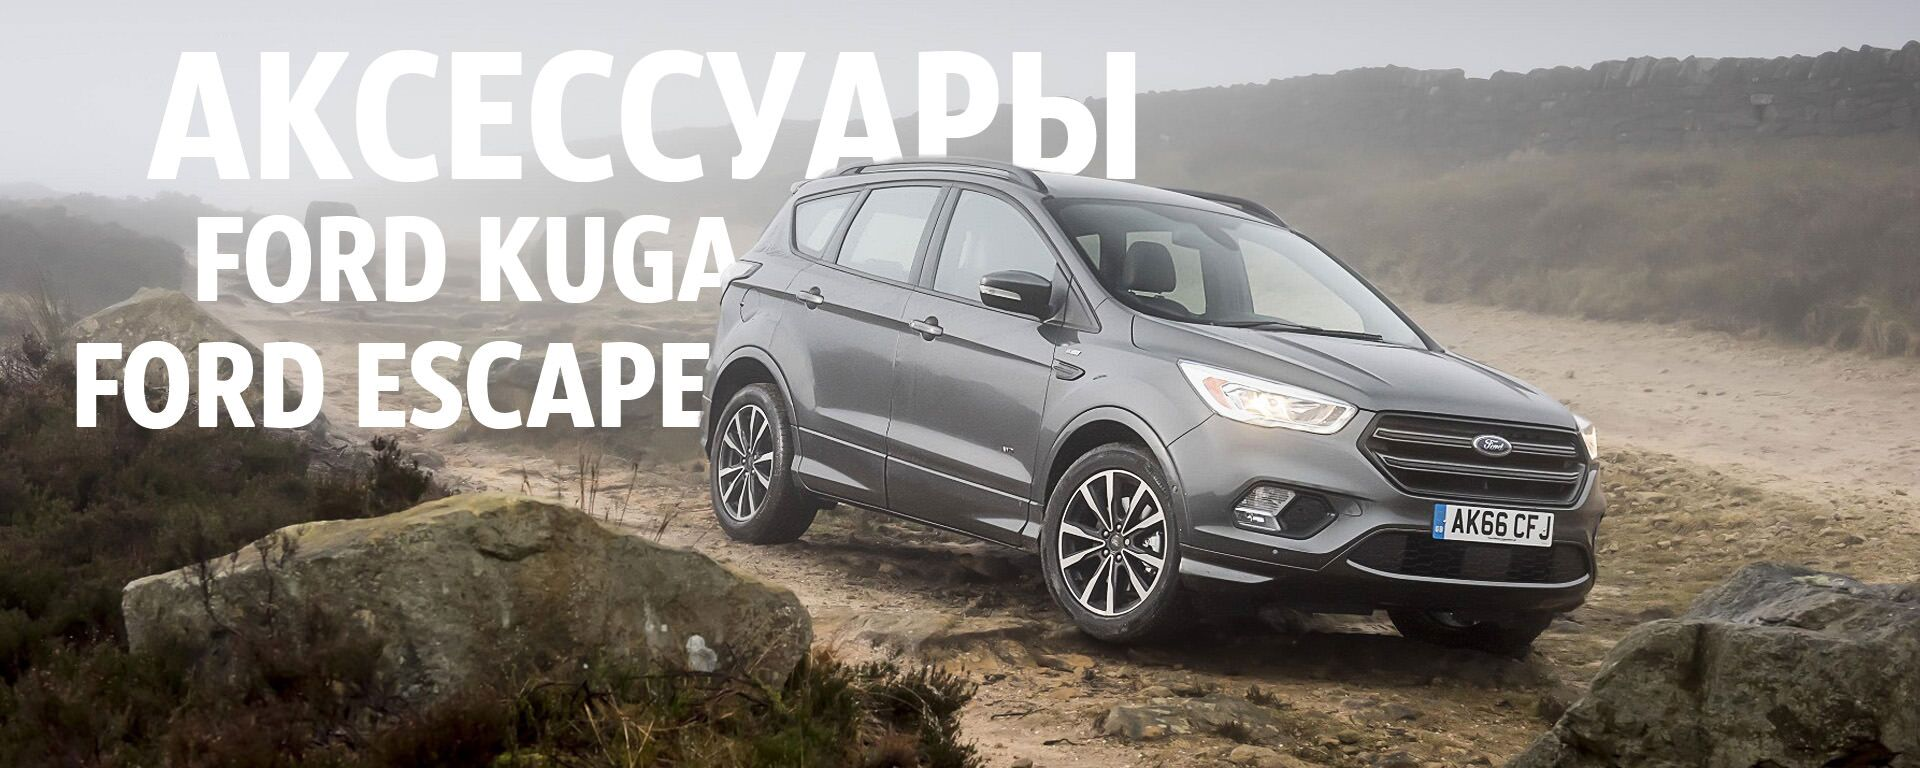 Аксессуары Ford Kuga Ford Escape